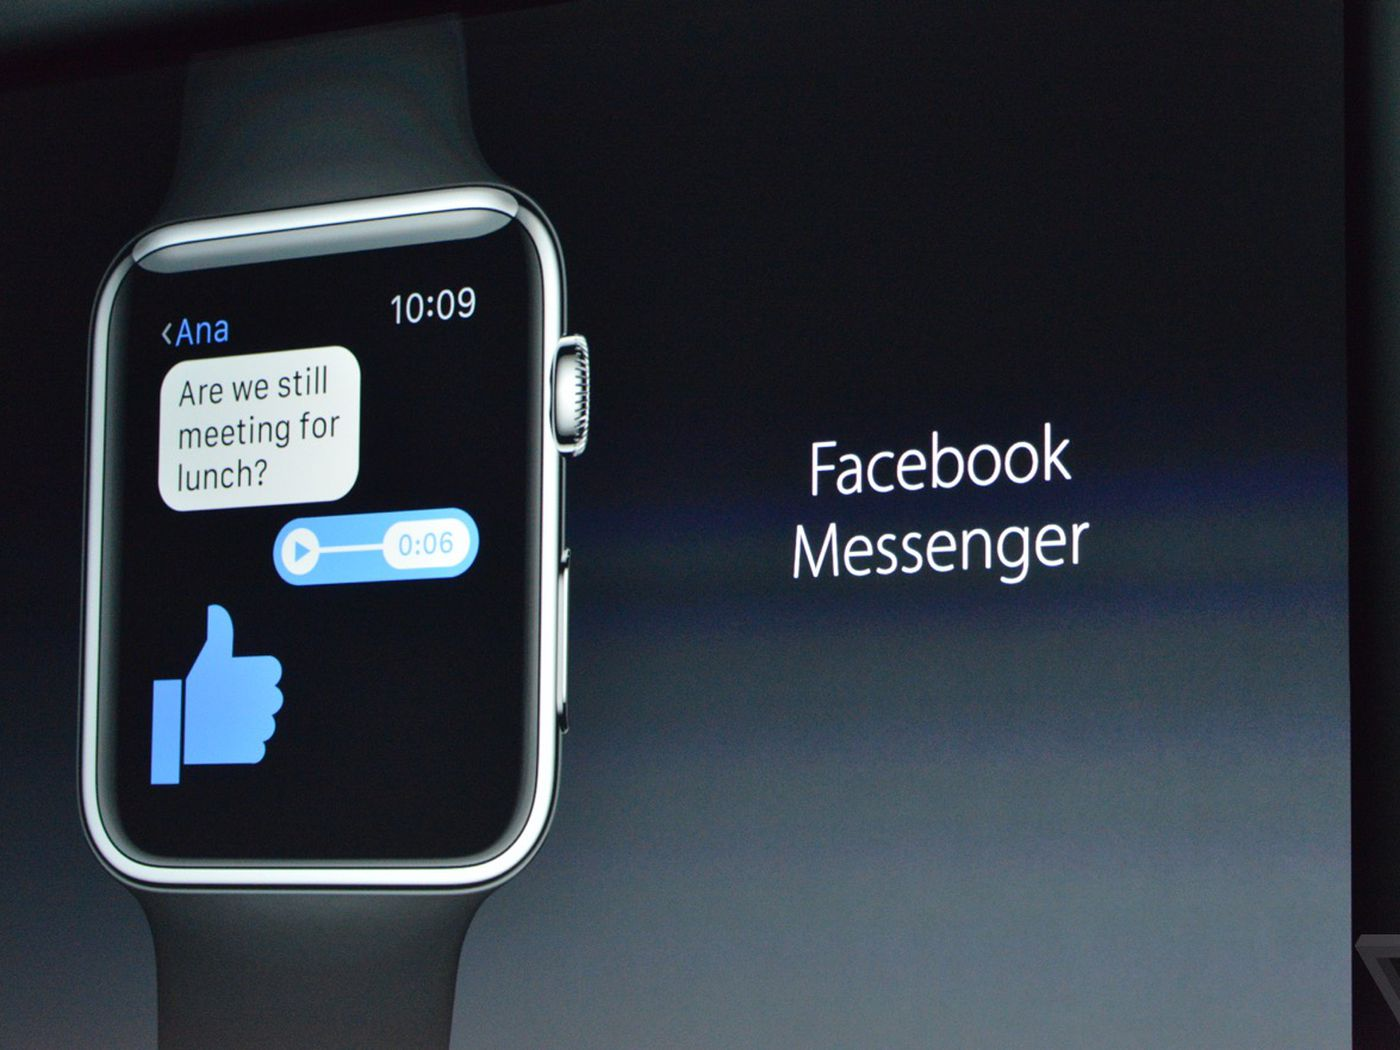 New Apple Watch apps include Facebook Messenger and GoPro